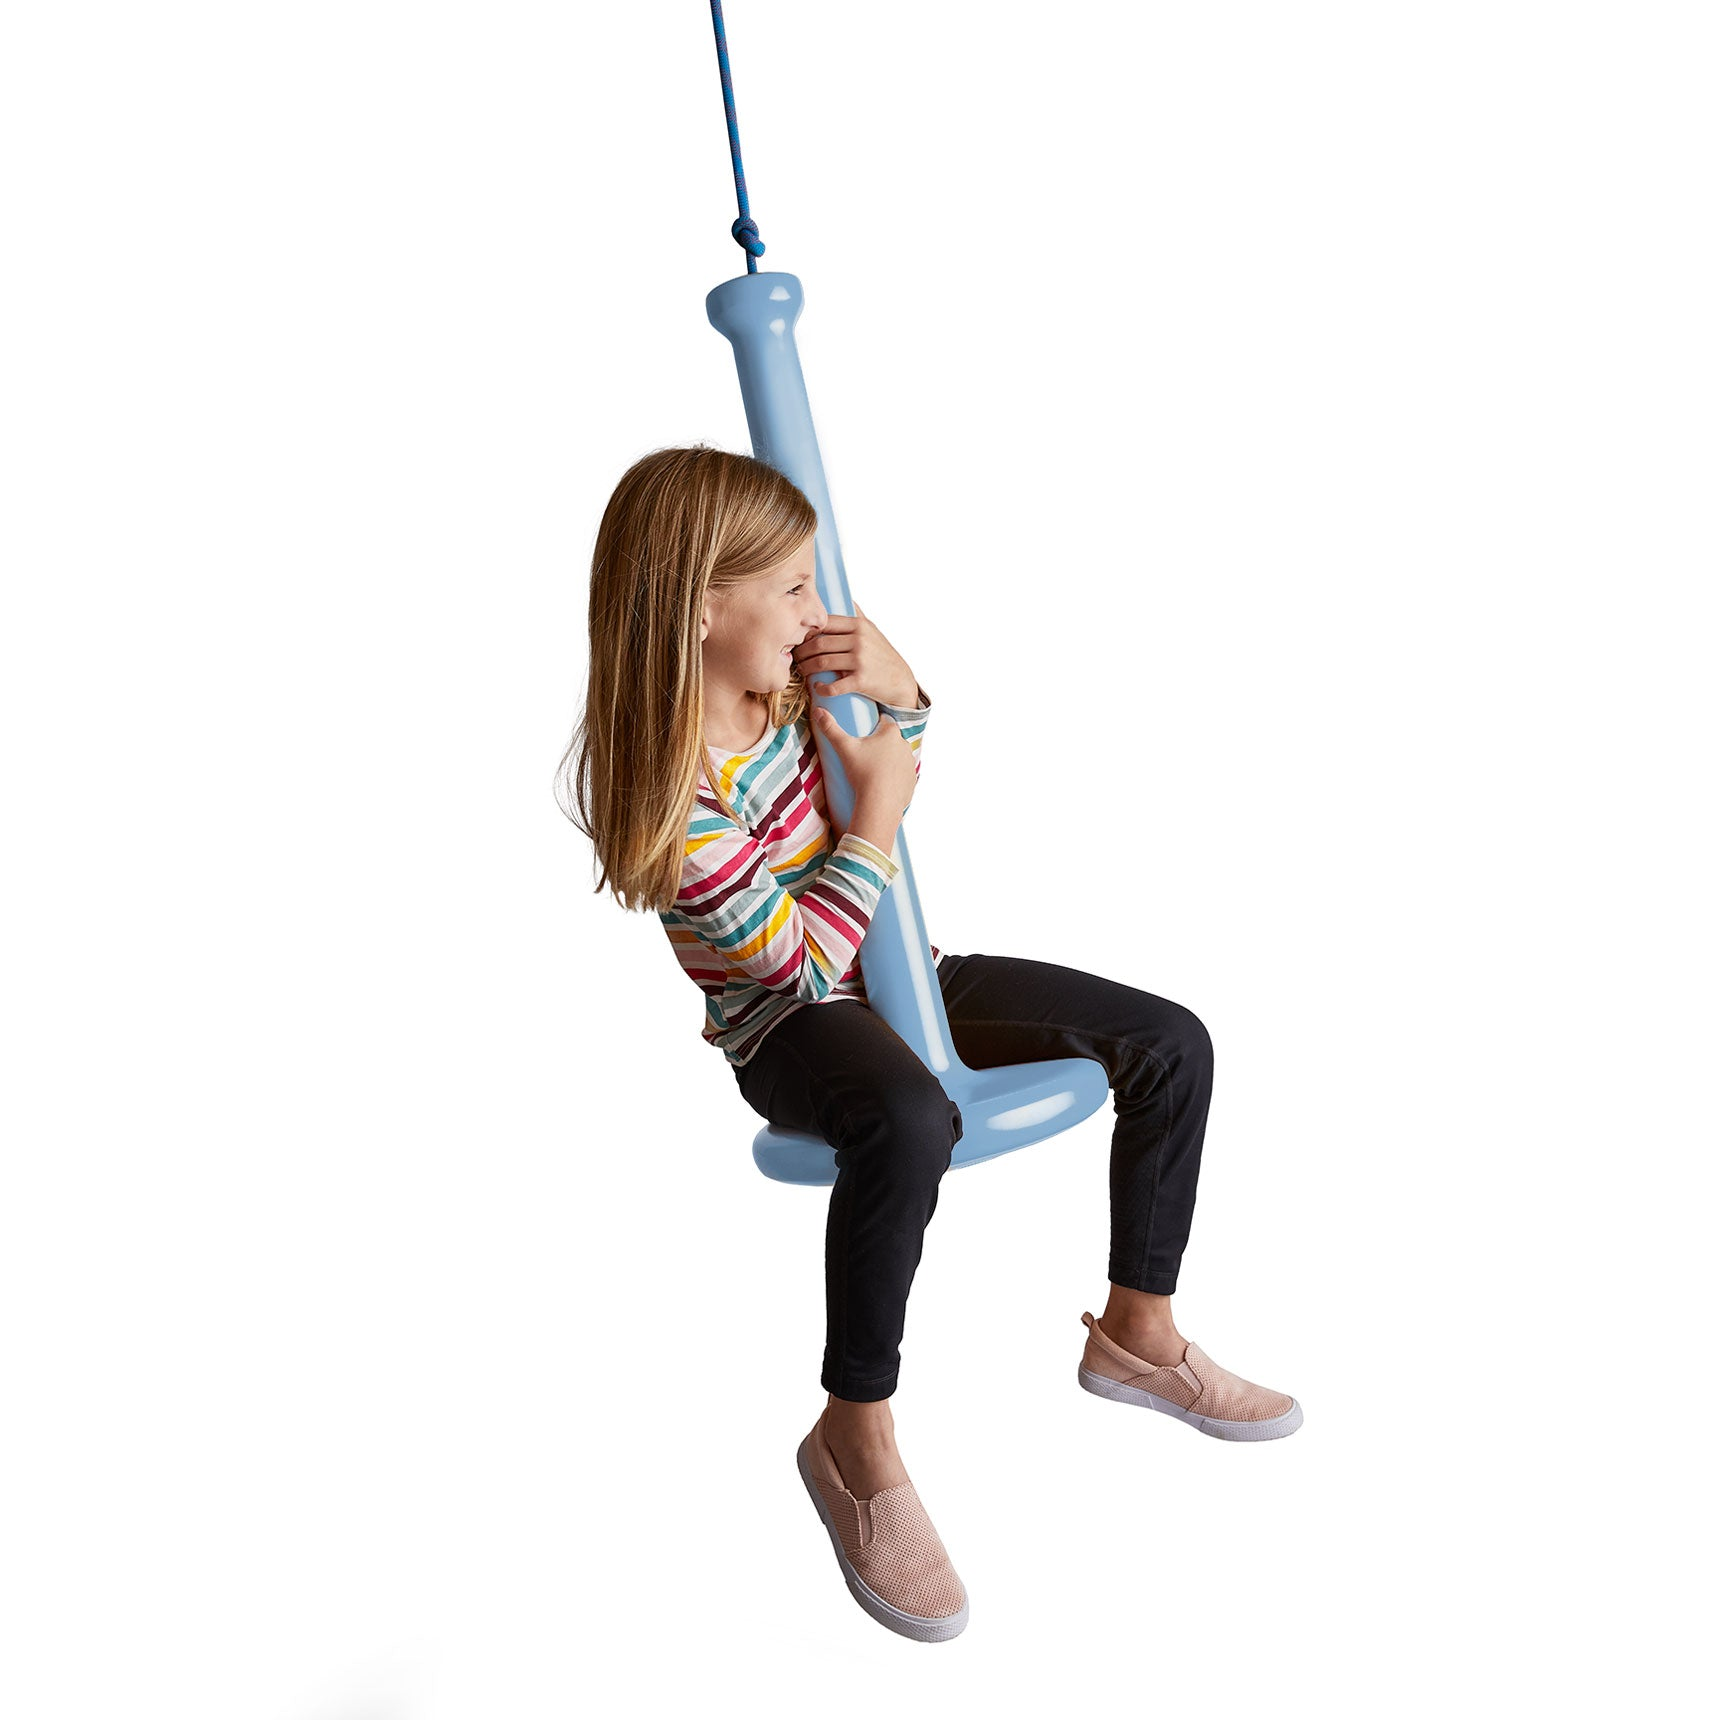 Kids Tree Swing with Rope for Outdoor Use Blue | Girl on Swing